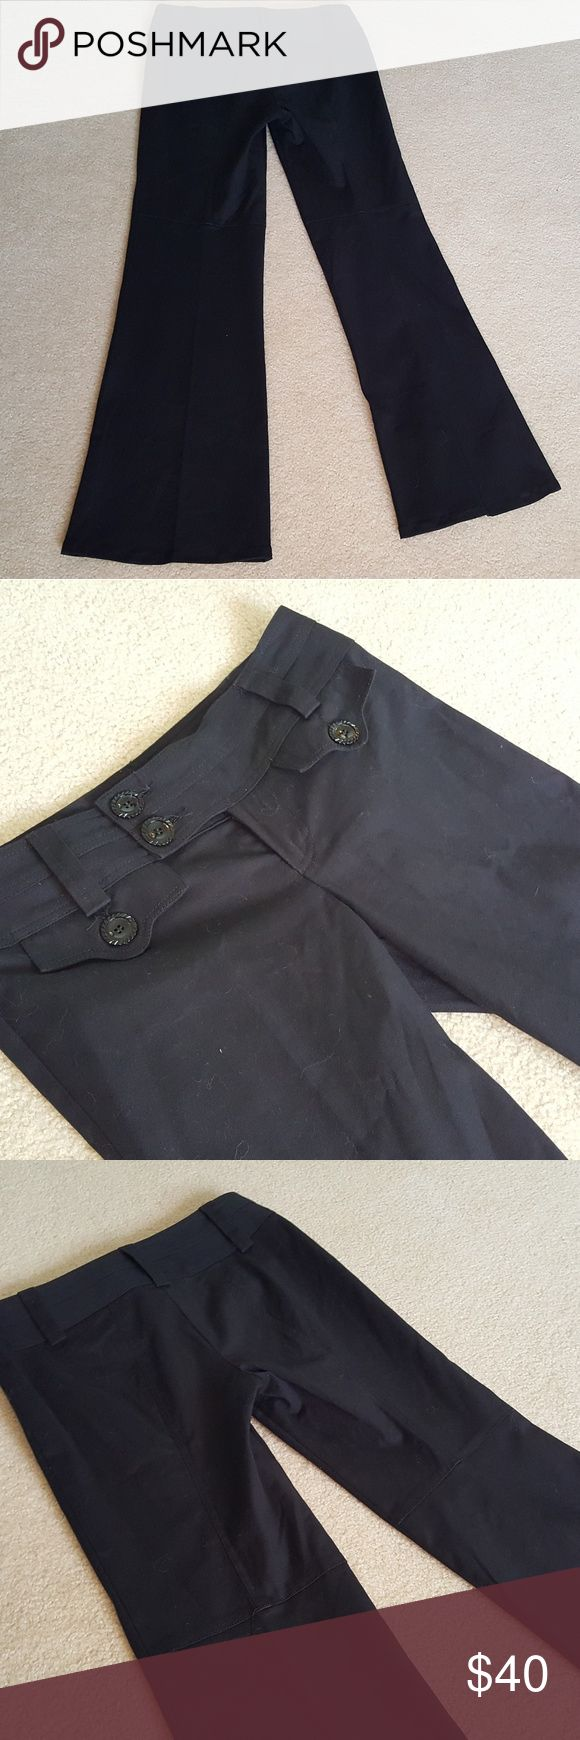 """Nanette Lepore Dark Navy Blue Dress Pants 6 These gorgeous navy blue dress pants feature unique pocket and button detail. They are in very good pre-owned condition with only minimal wear. Size 6, approximately a 32"""" inseam. Nanette Lepore Pants Trousers"""